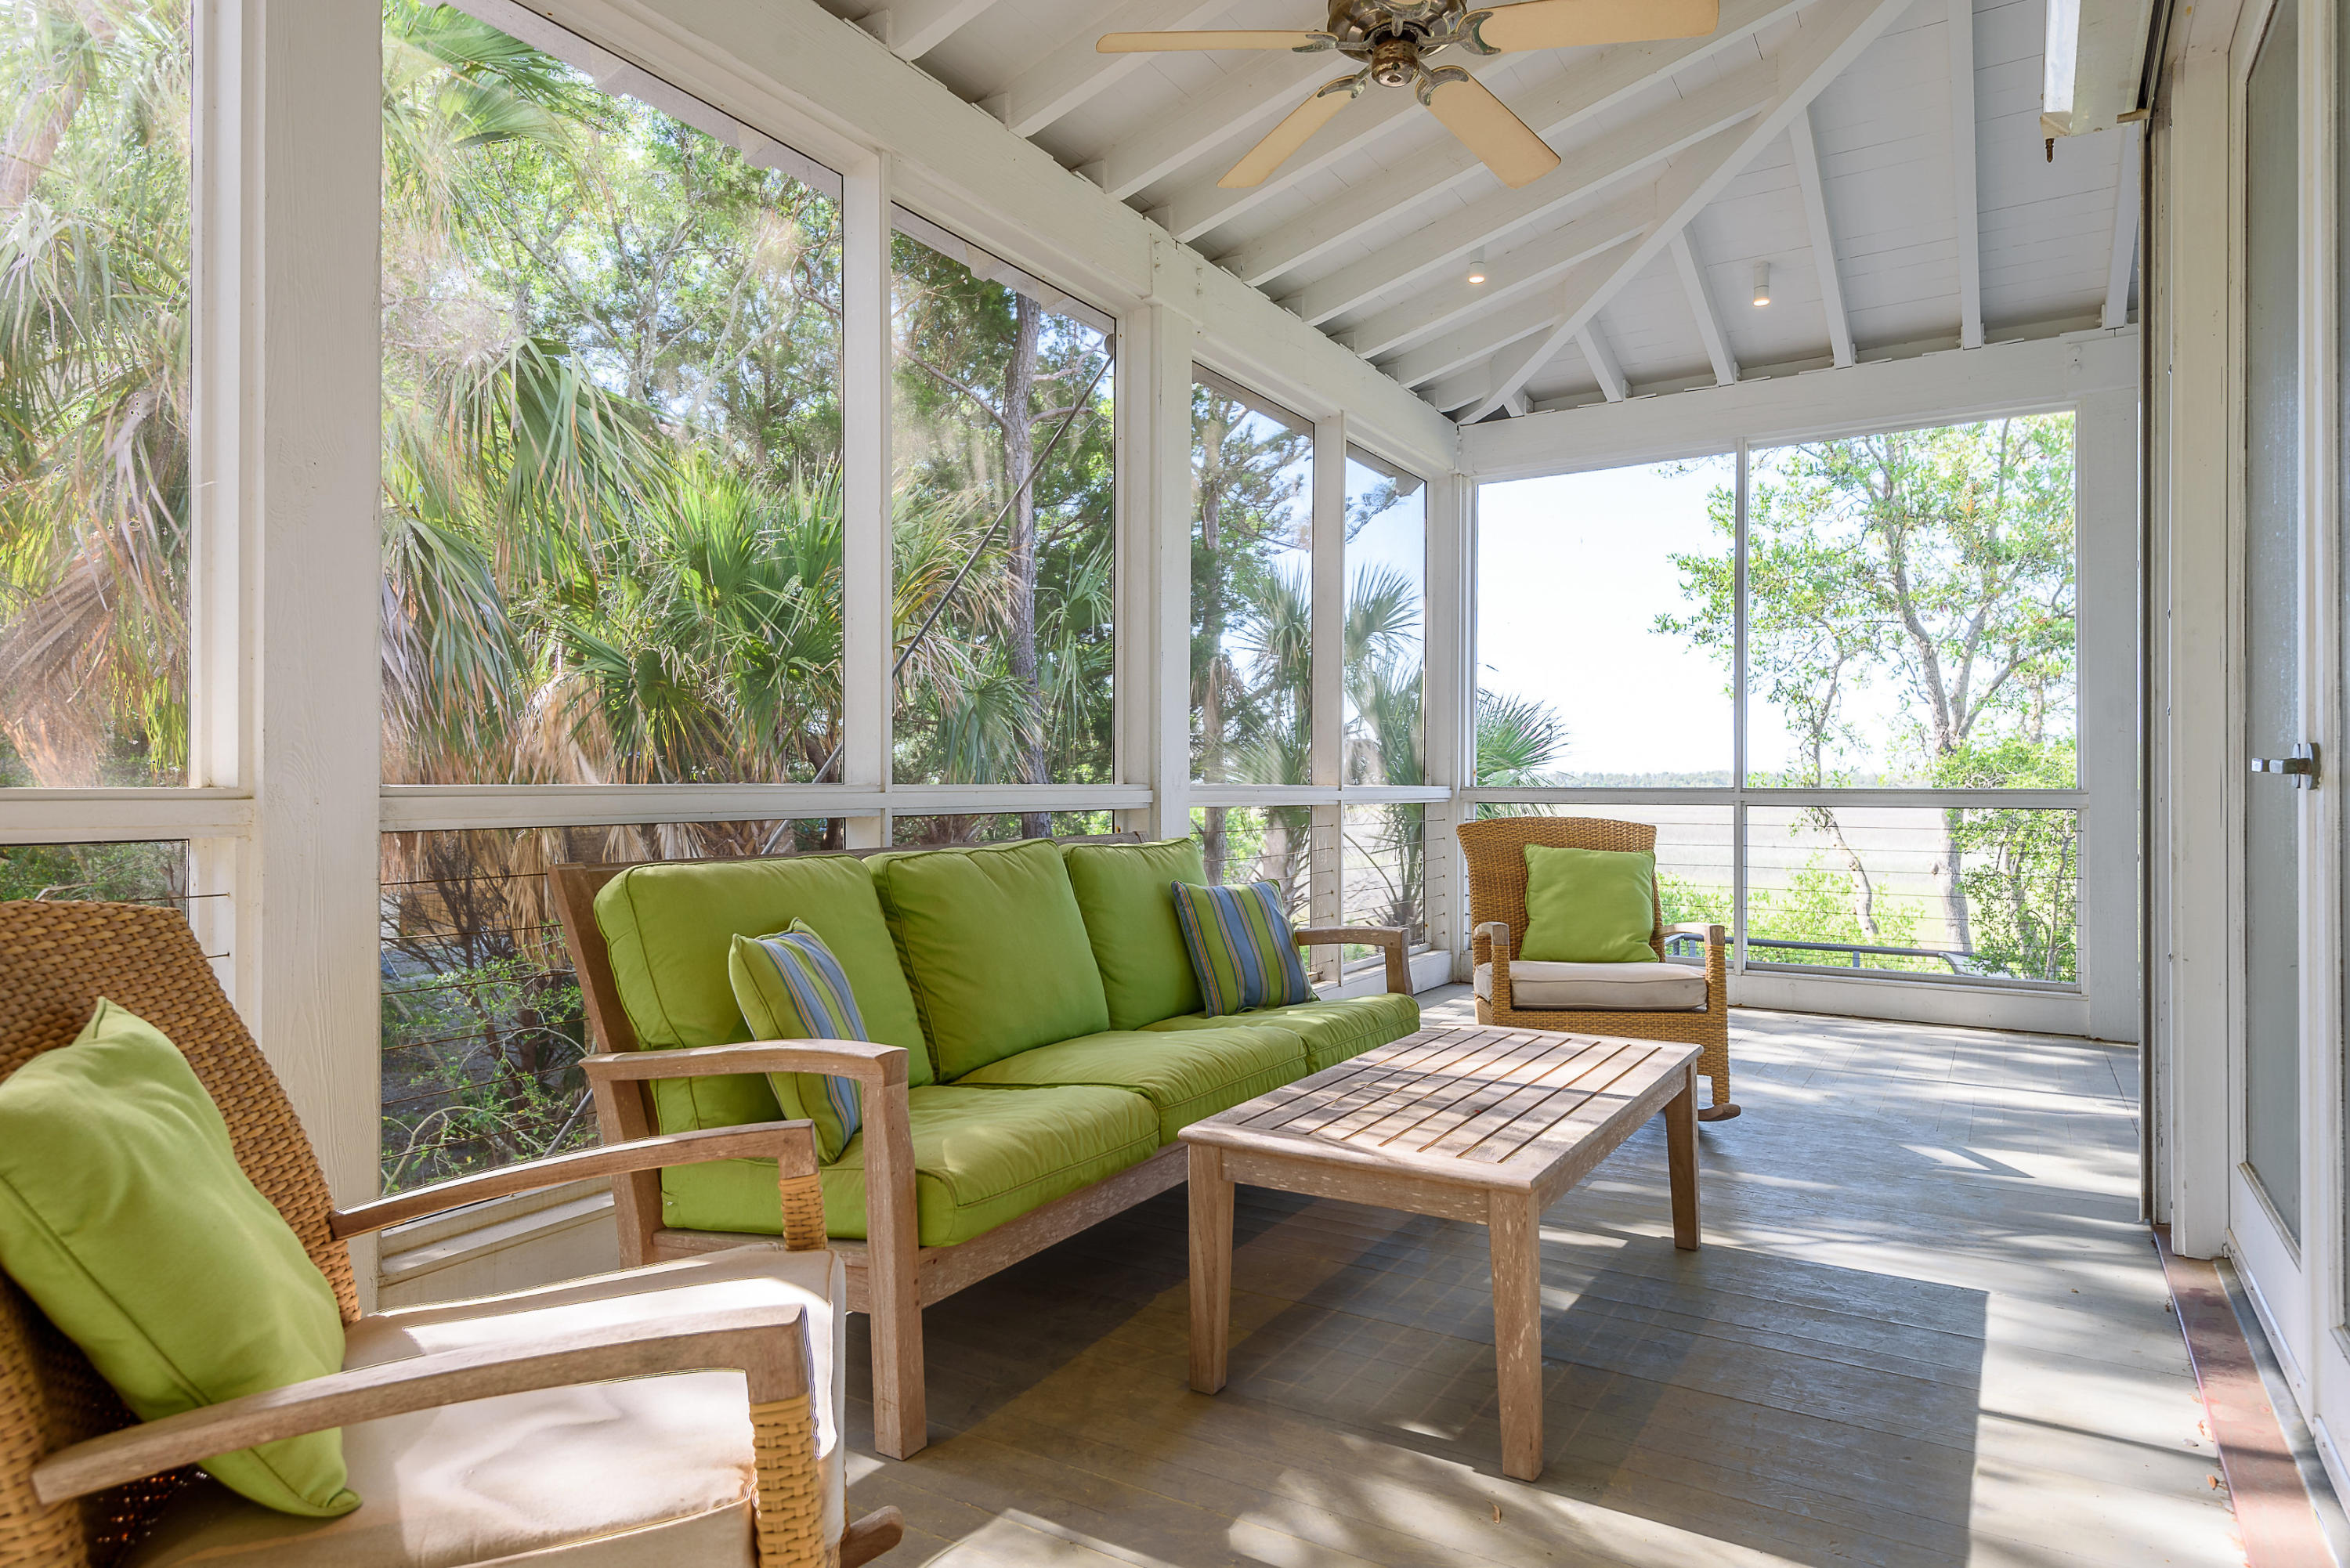 Wild Dunes Homes For Sale - 23 Seagrass, Isle of Palms, SC - 73